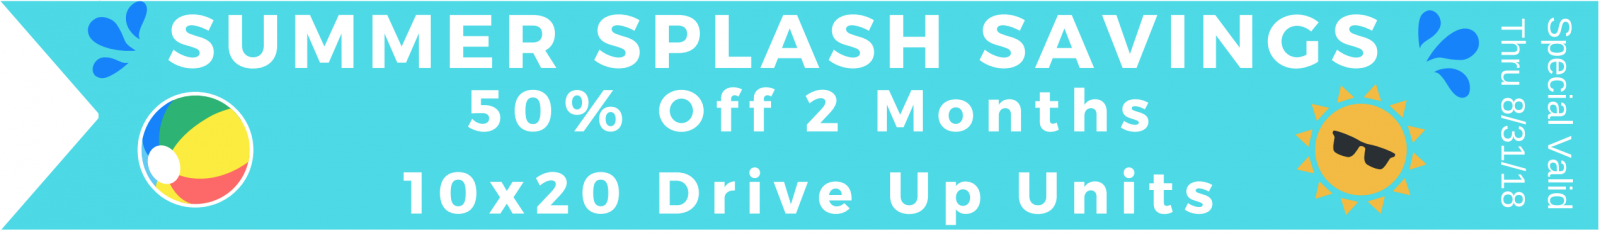 50% off 2 months on 10x20 drive up units